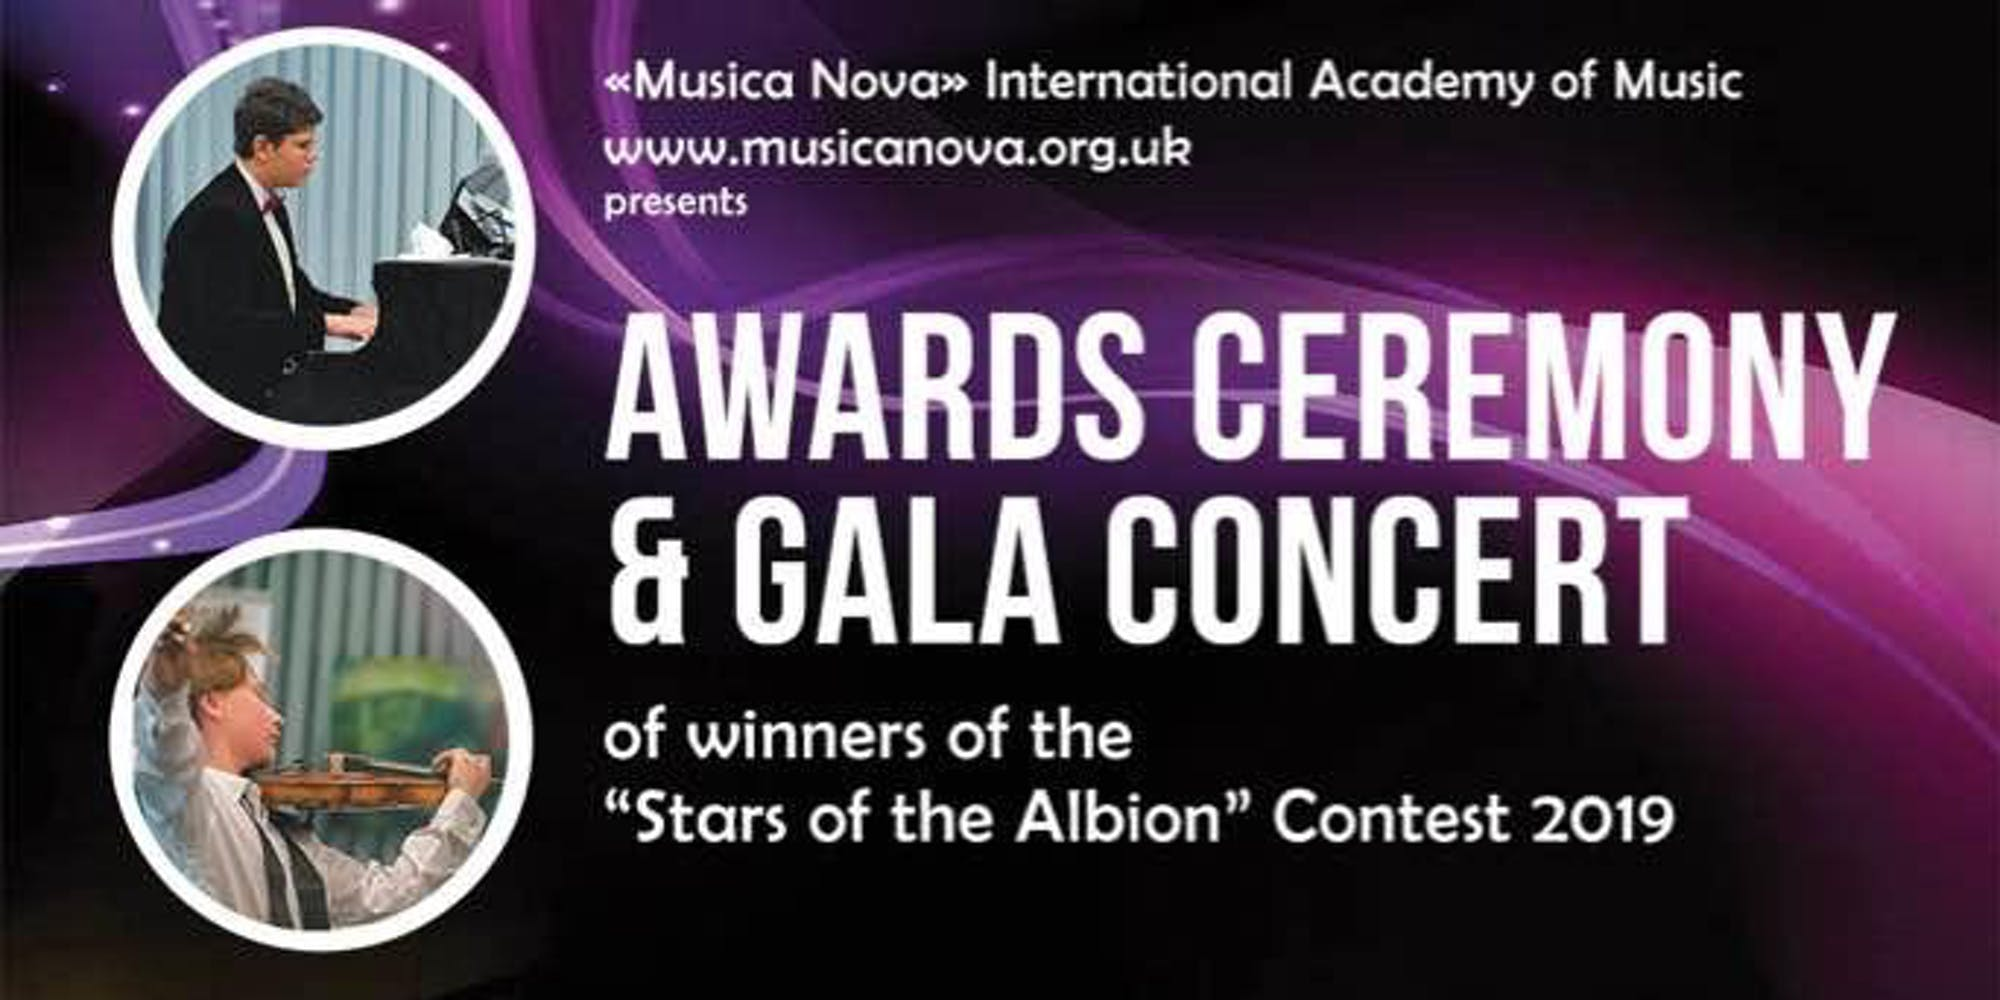 Stars of the Albion. Awards Ceremony & Gala Concert